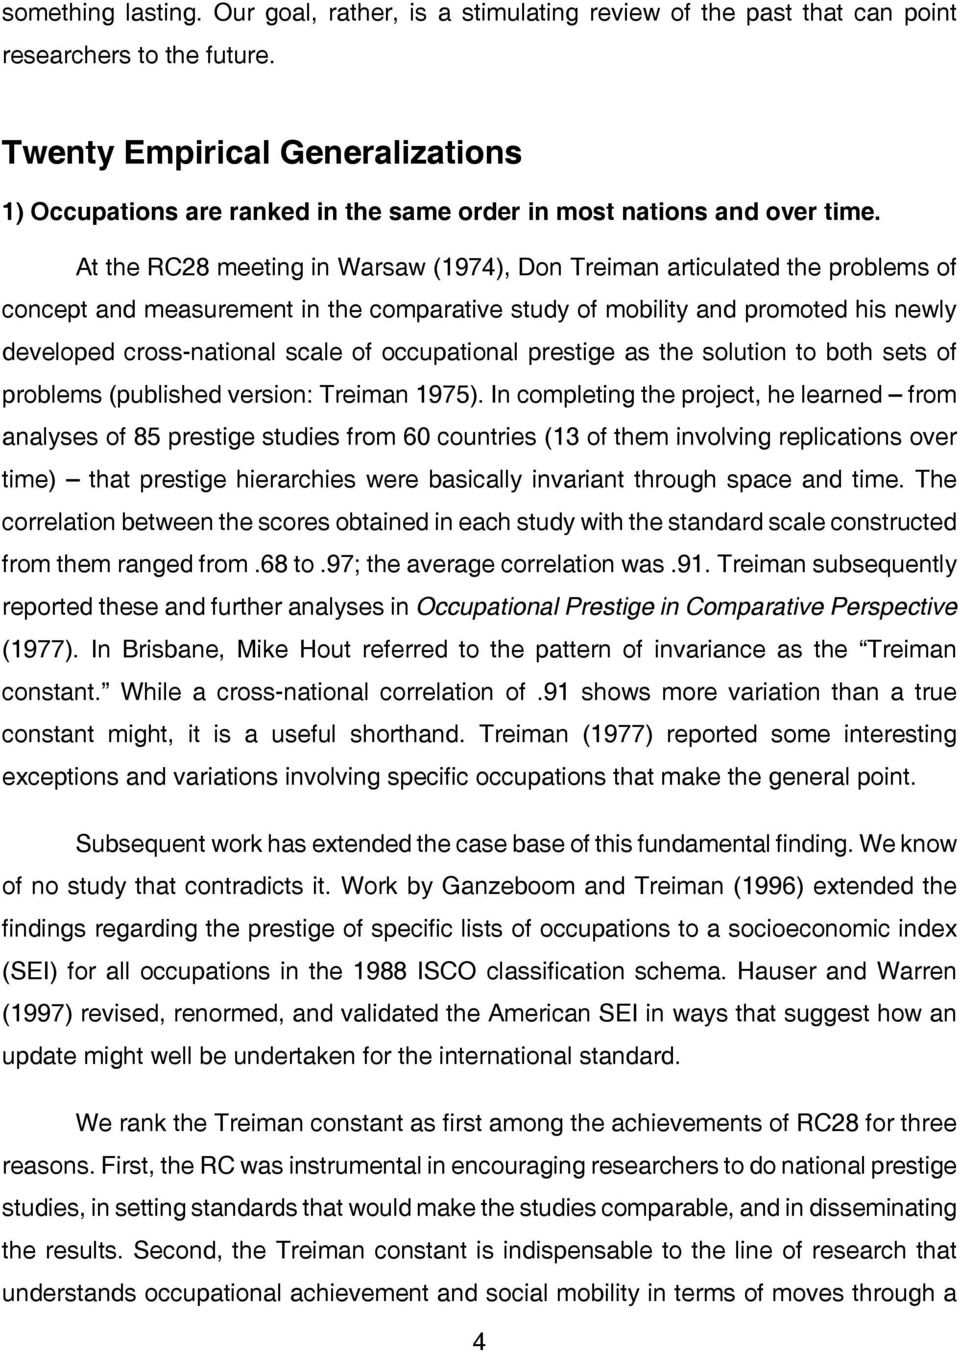 At the RC28 meeting in Warsaw (1974), Don Treiman articulated the problems of concept and measurement in the comparative study of mobility and promoted his newly developed cross-national scale of